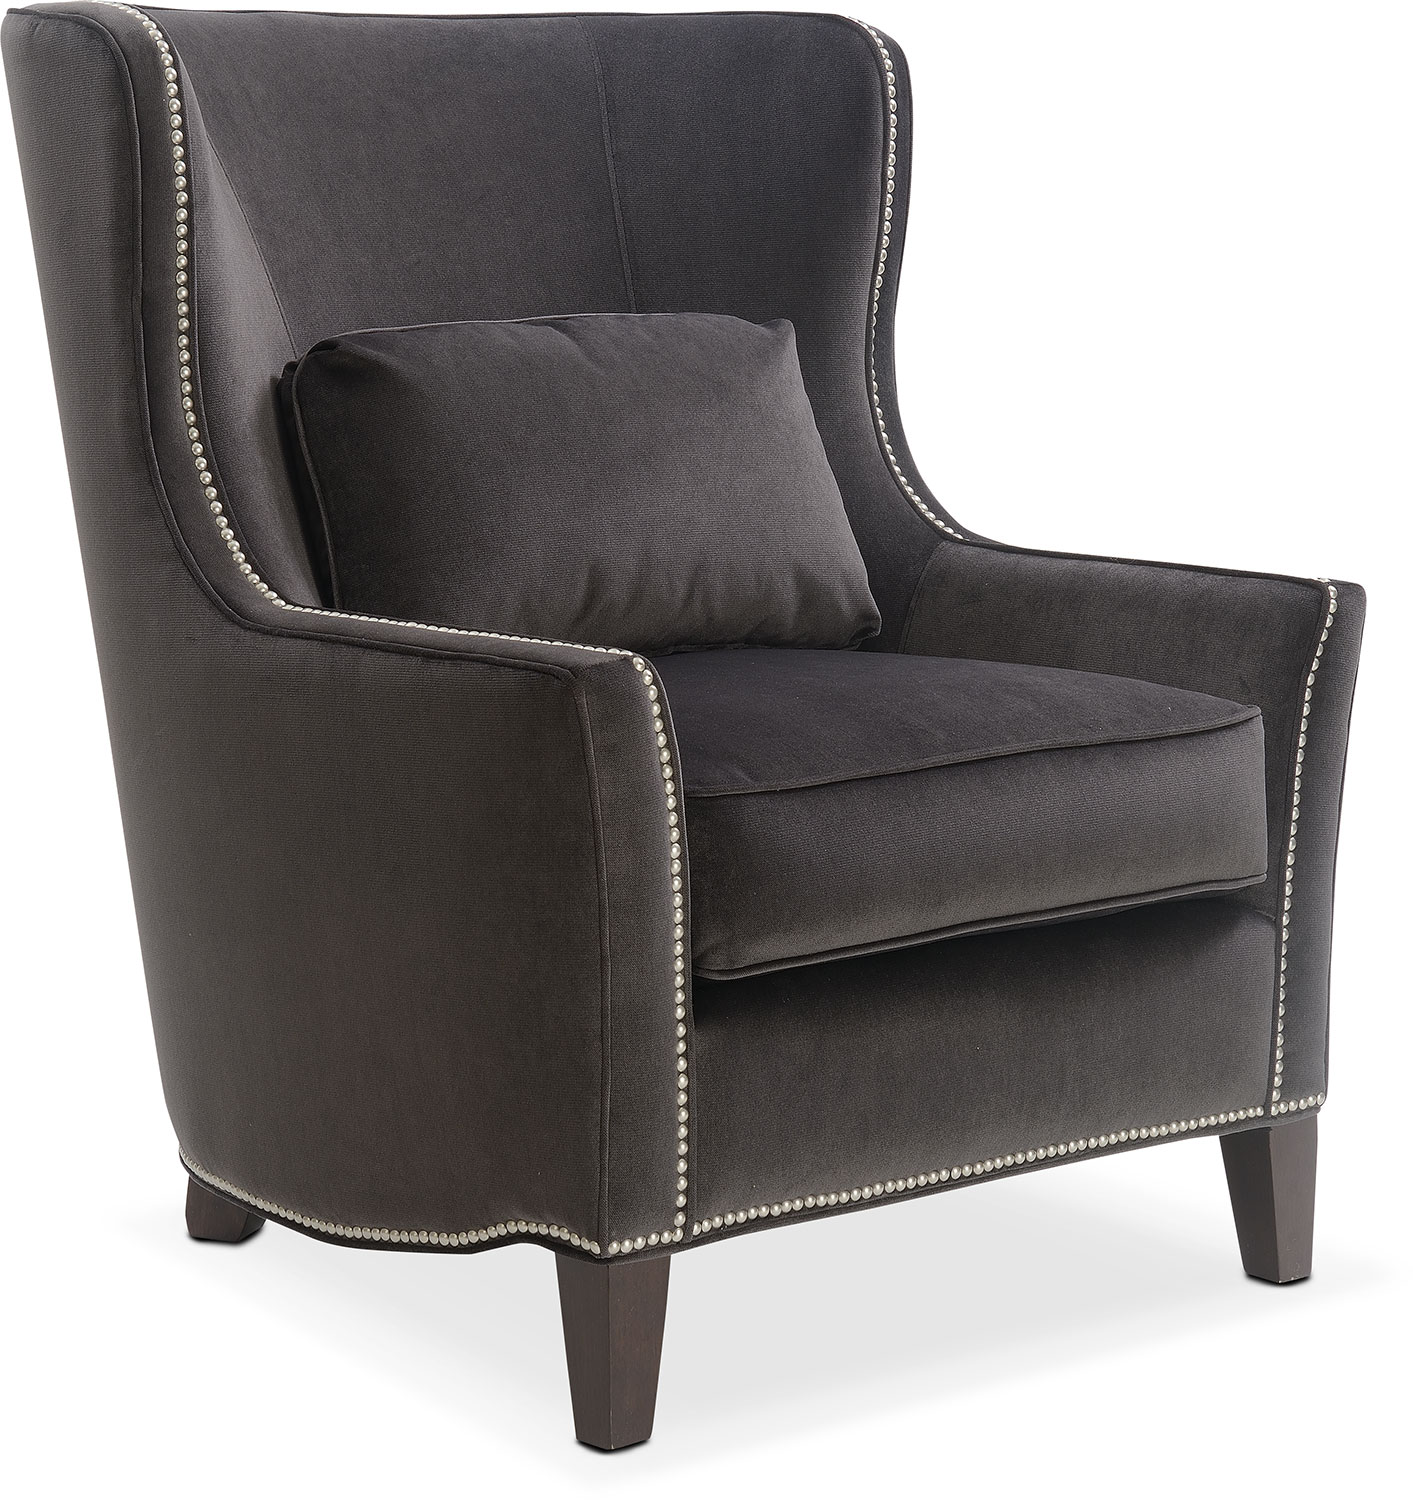 Living Room Furniture - Fenwick Accent Chair - Sterling